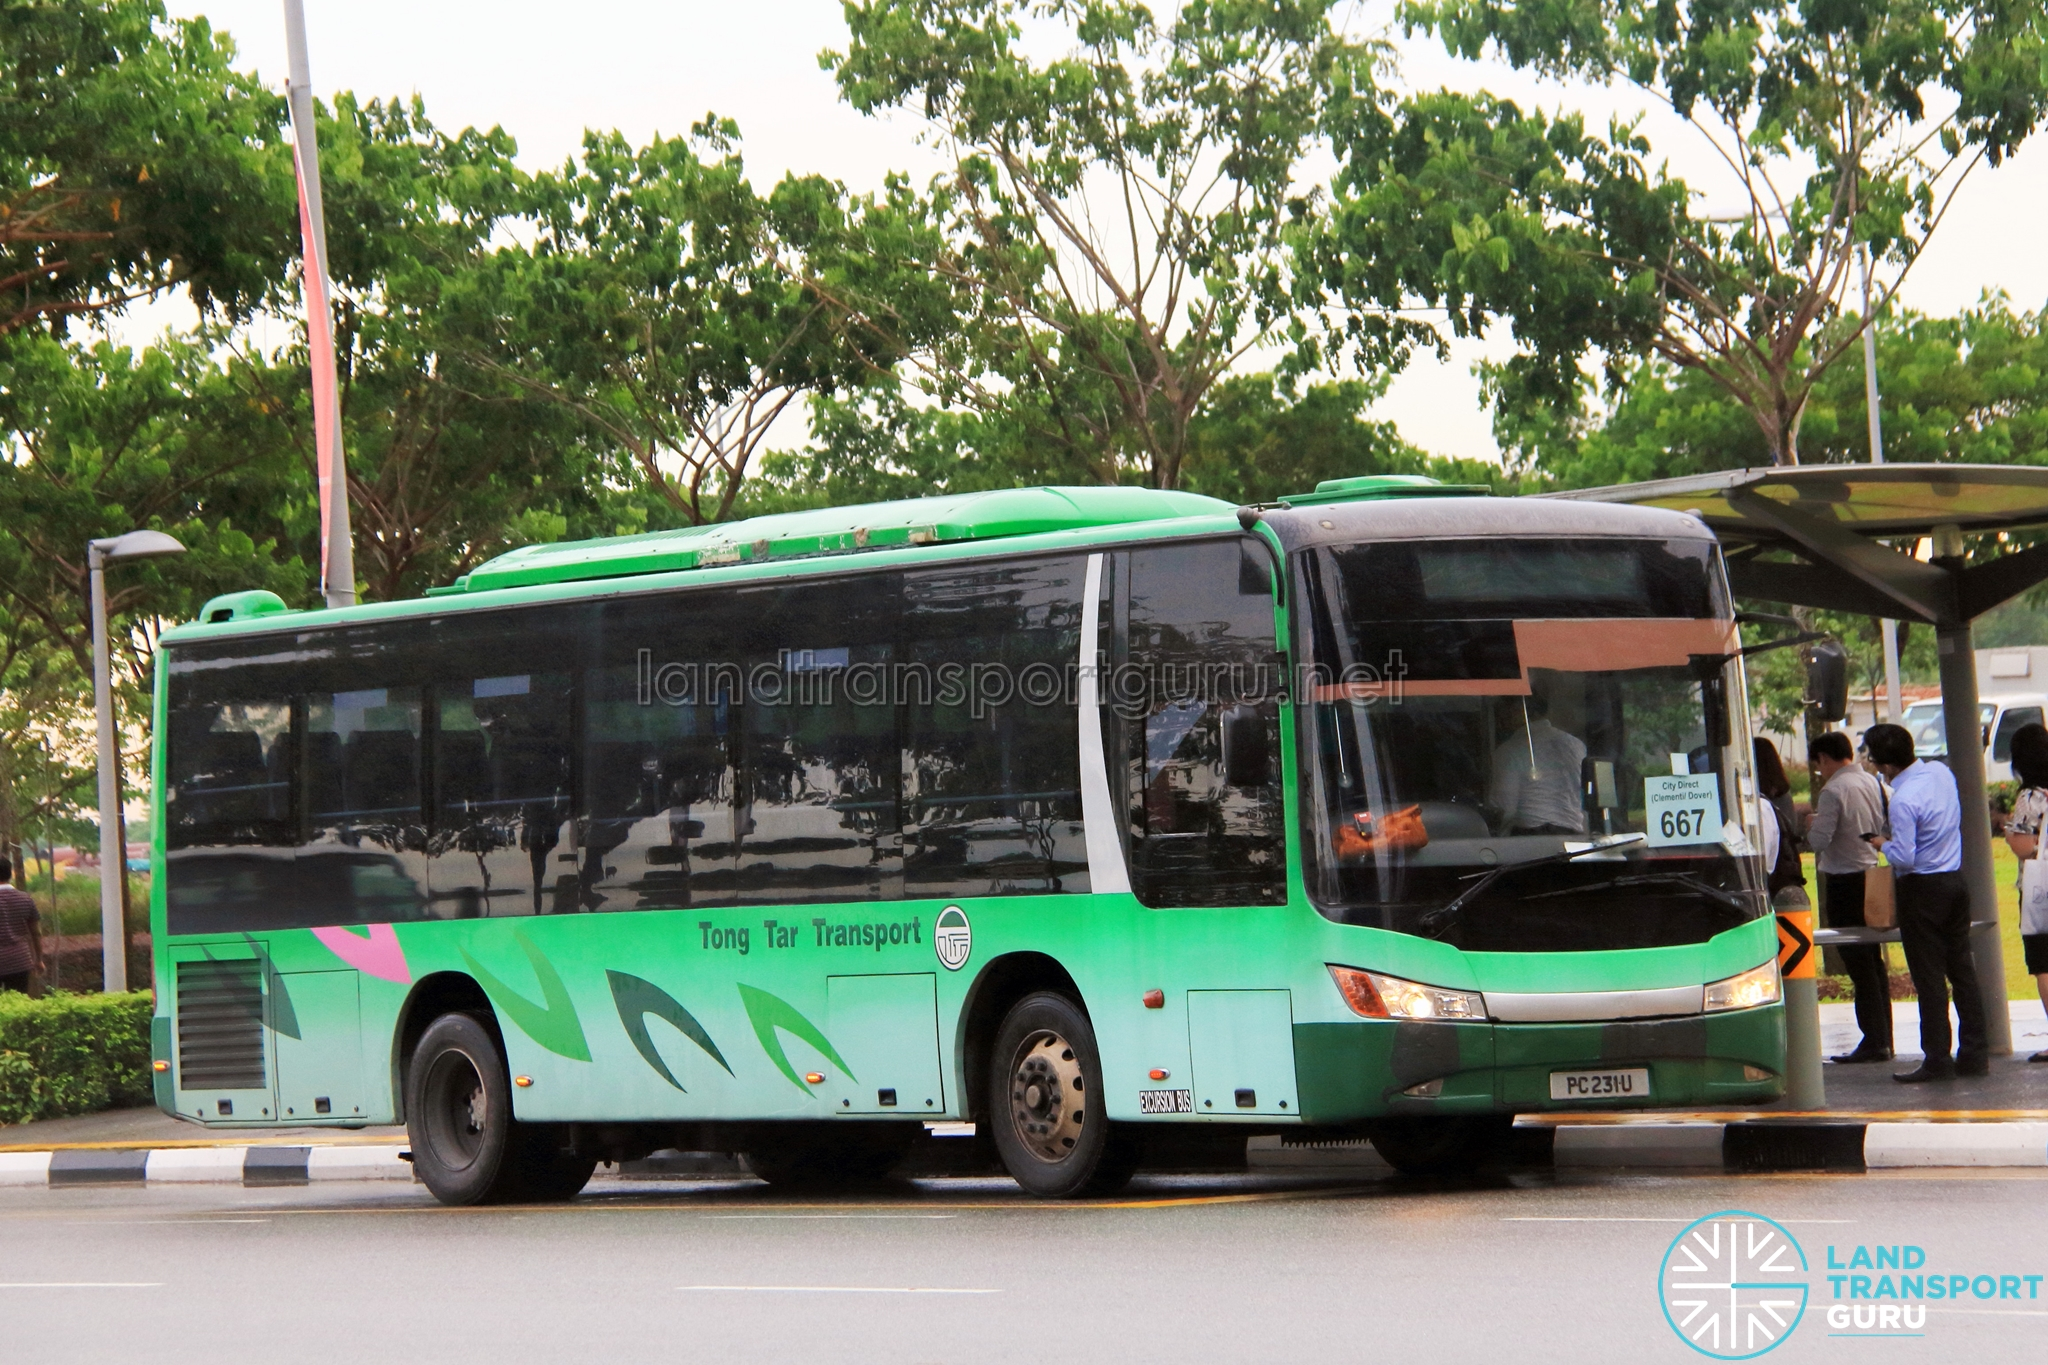 Tong Tar Transport Service Zhongtong LCK6103G (PC231U) - City Direct 667